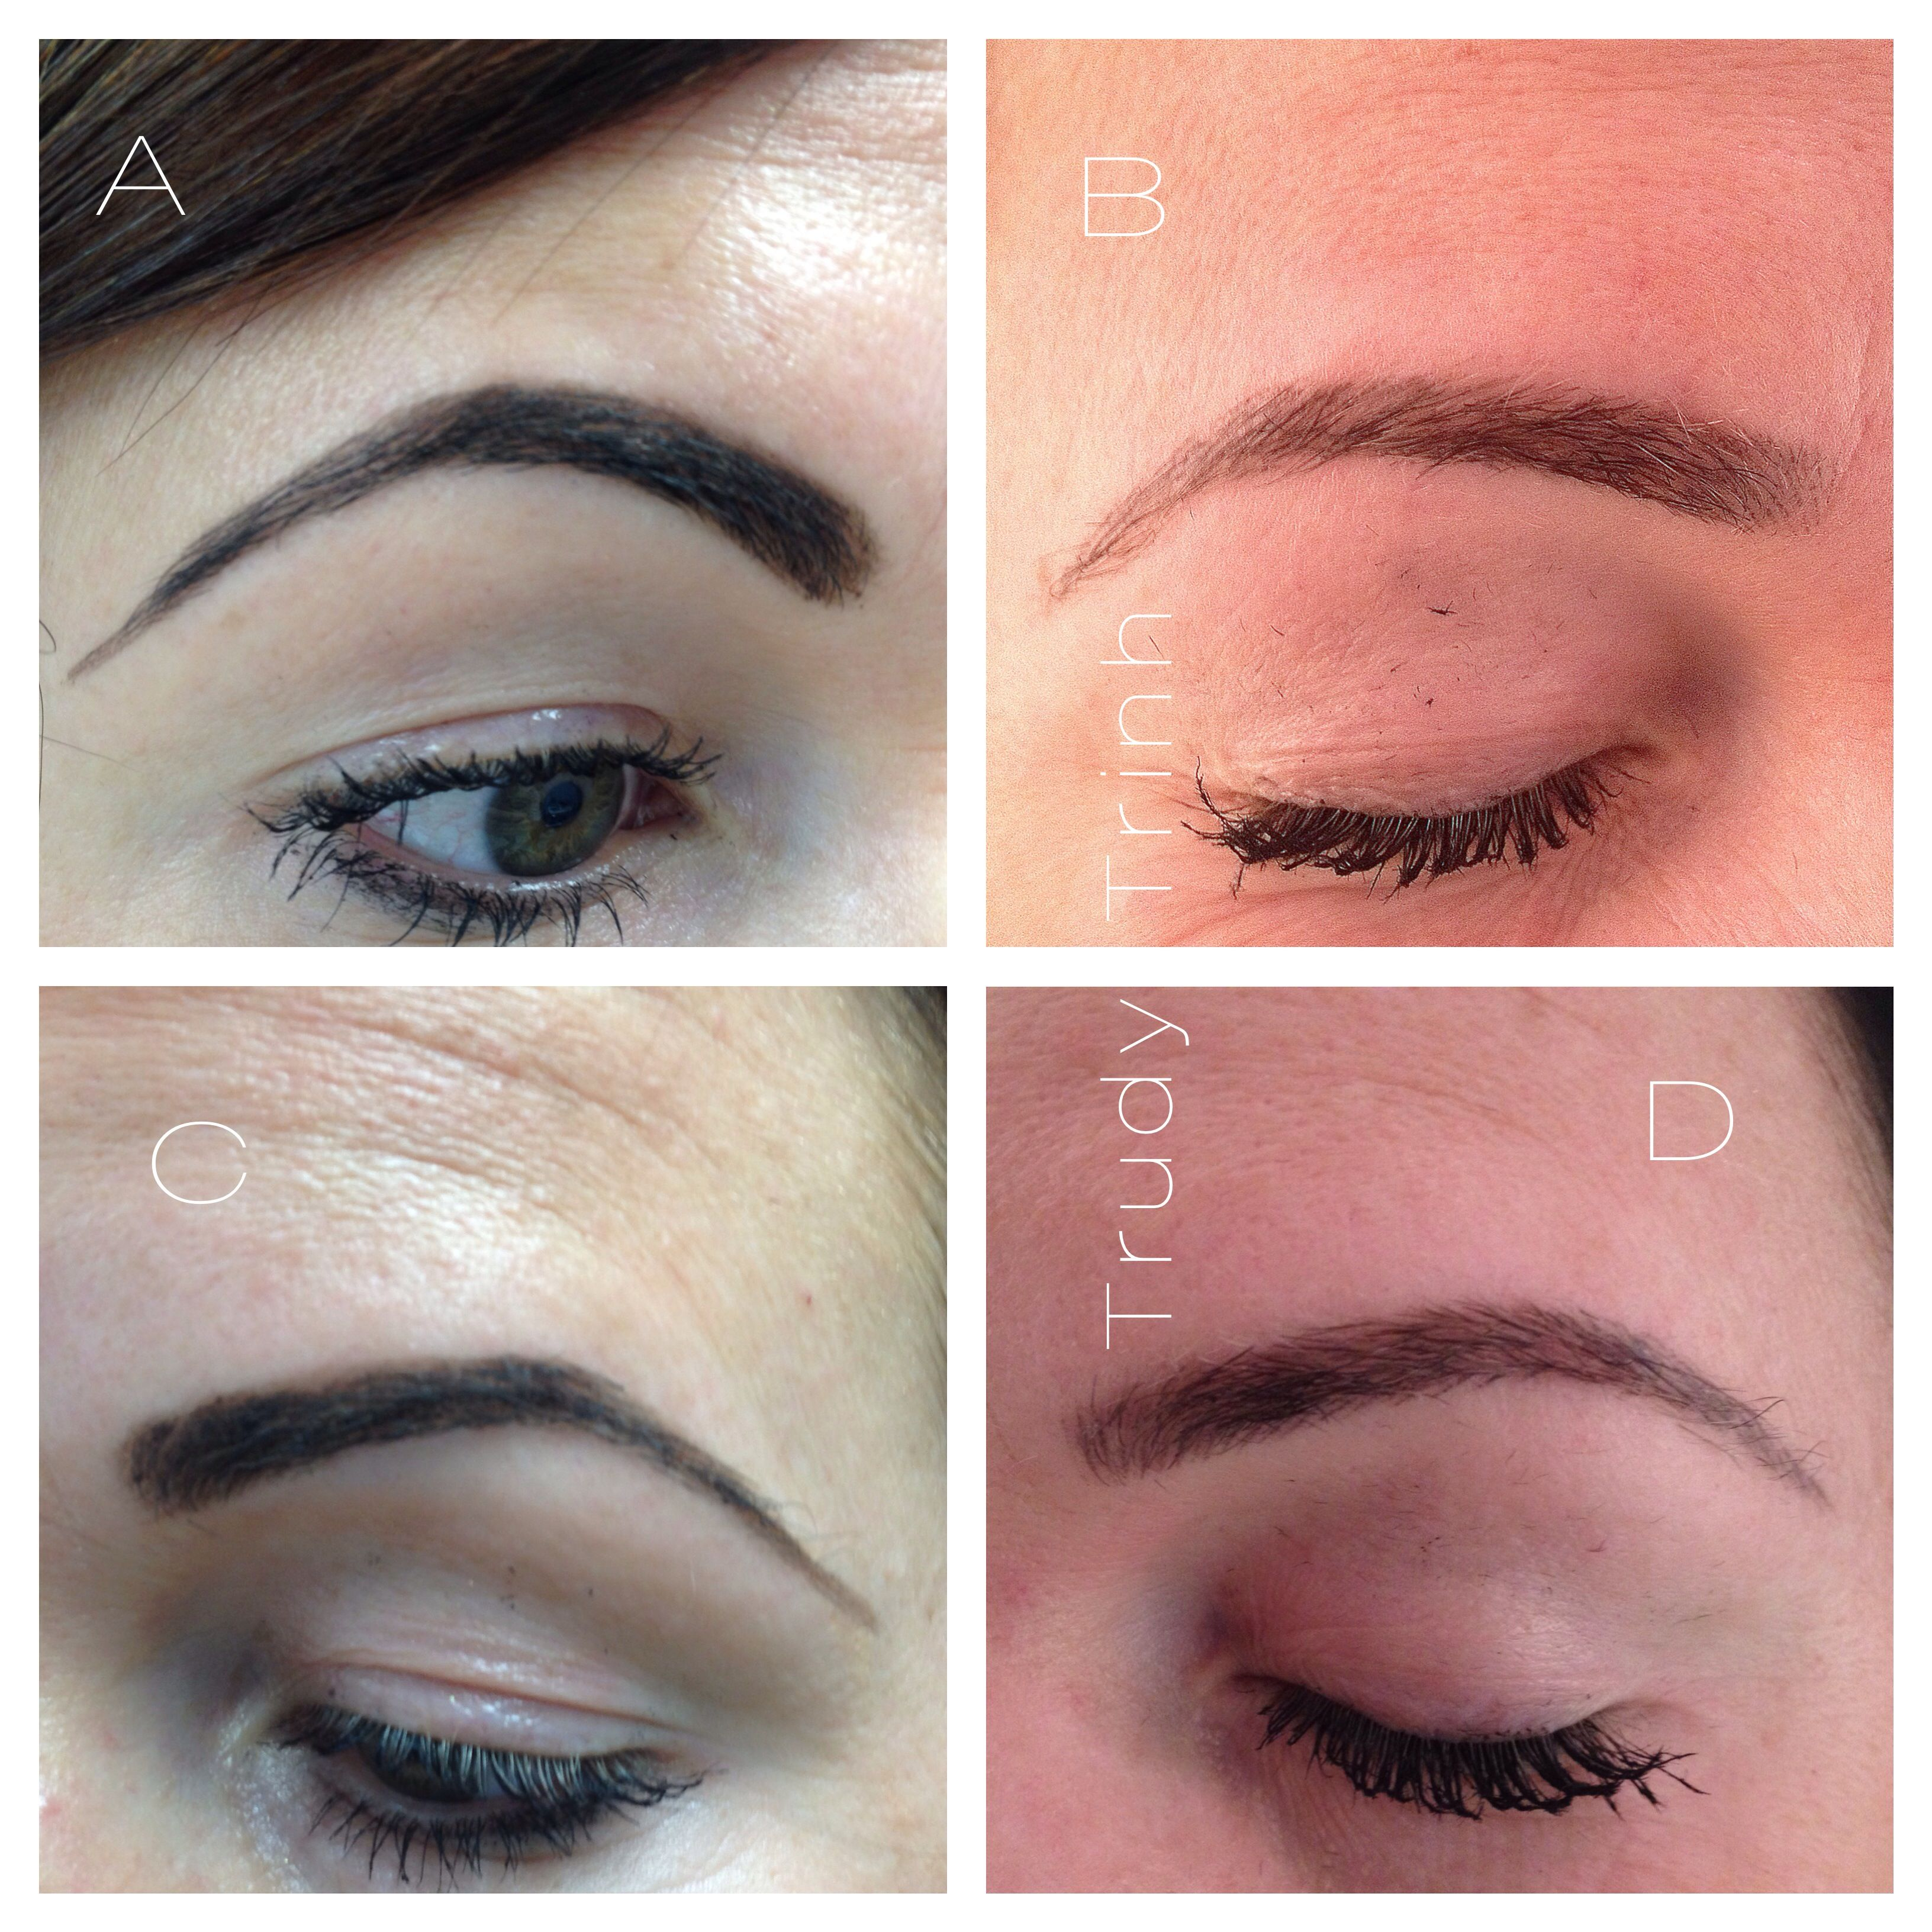 A and C are her brows before tattoo (how she drew her own brows). B ...